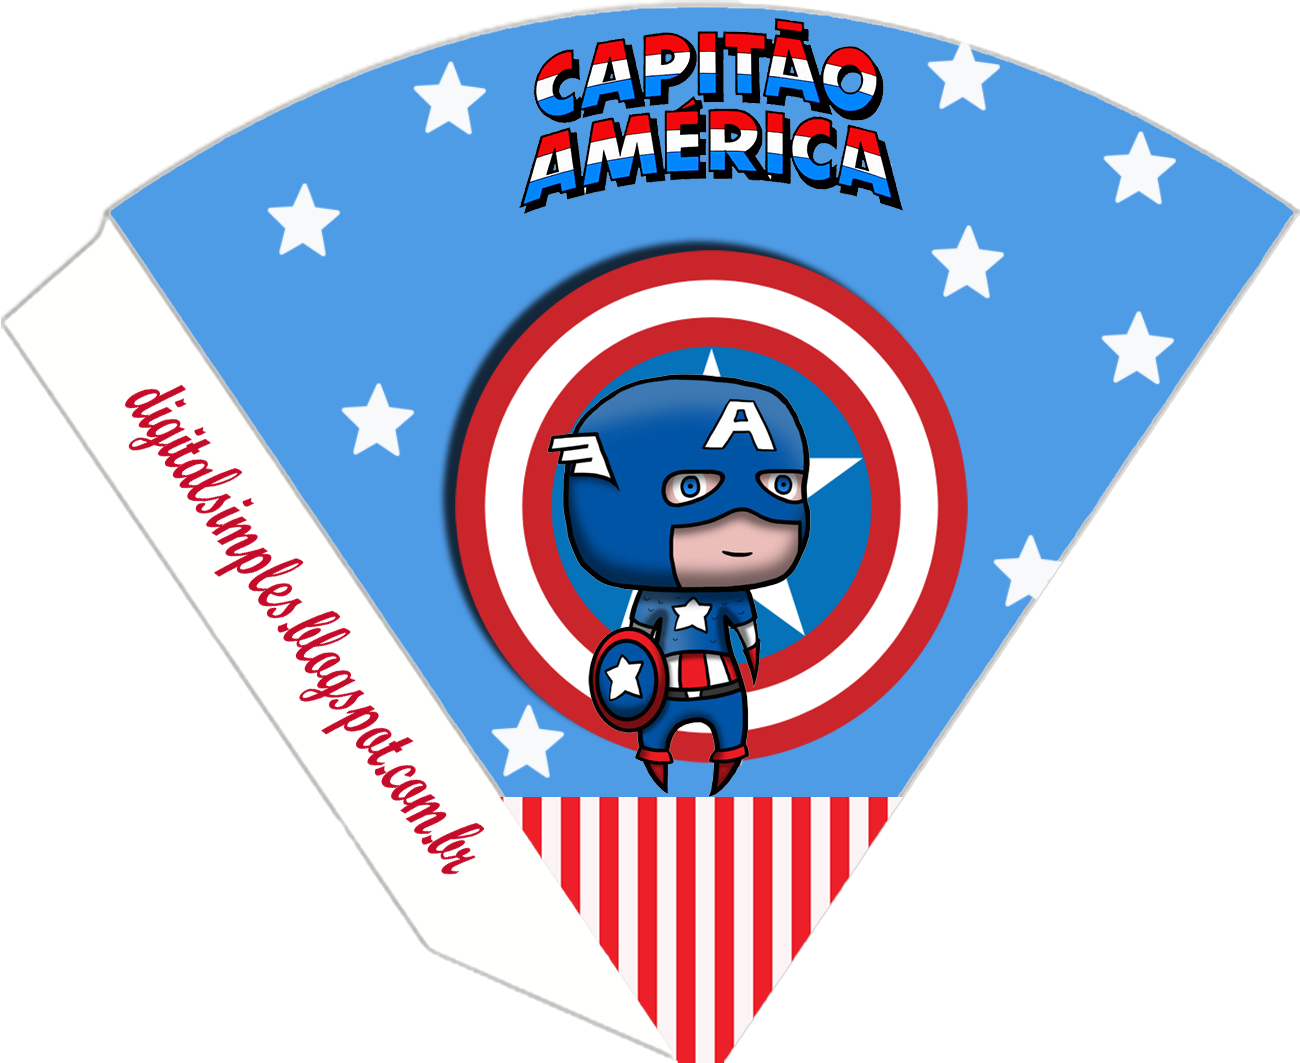 Captain America Baby: Free Printable Kit. - Oh My Fiesta